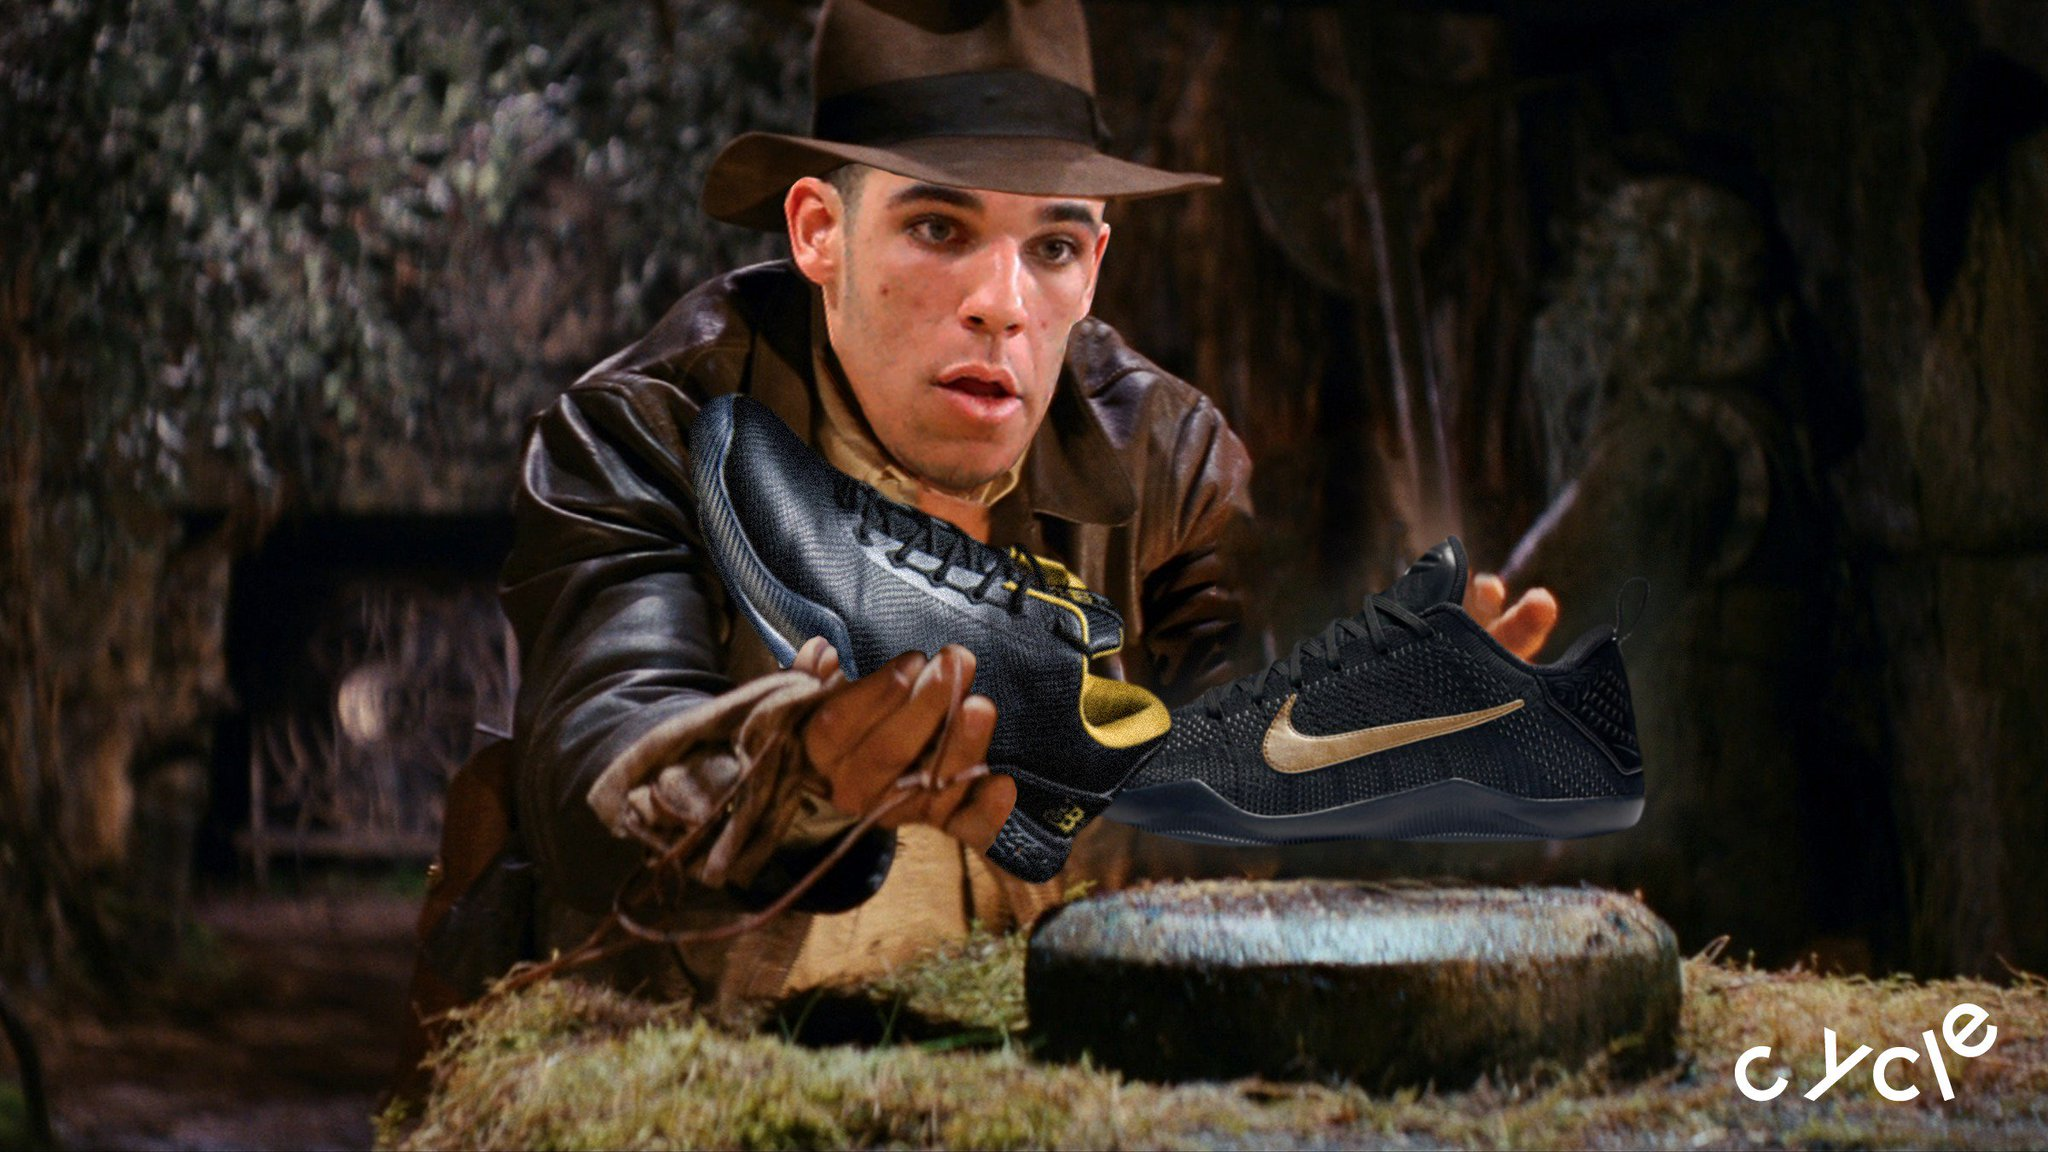 Lonzo Ball: Raider of the Lost Kobes. https://t.co/oKSNeJQasE